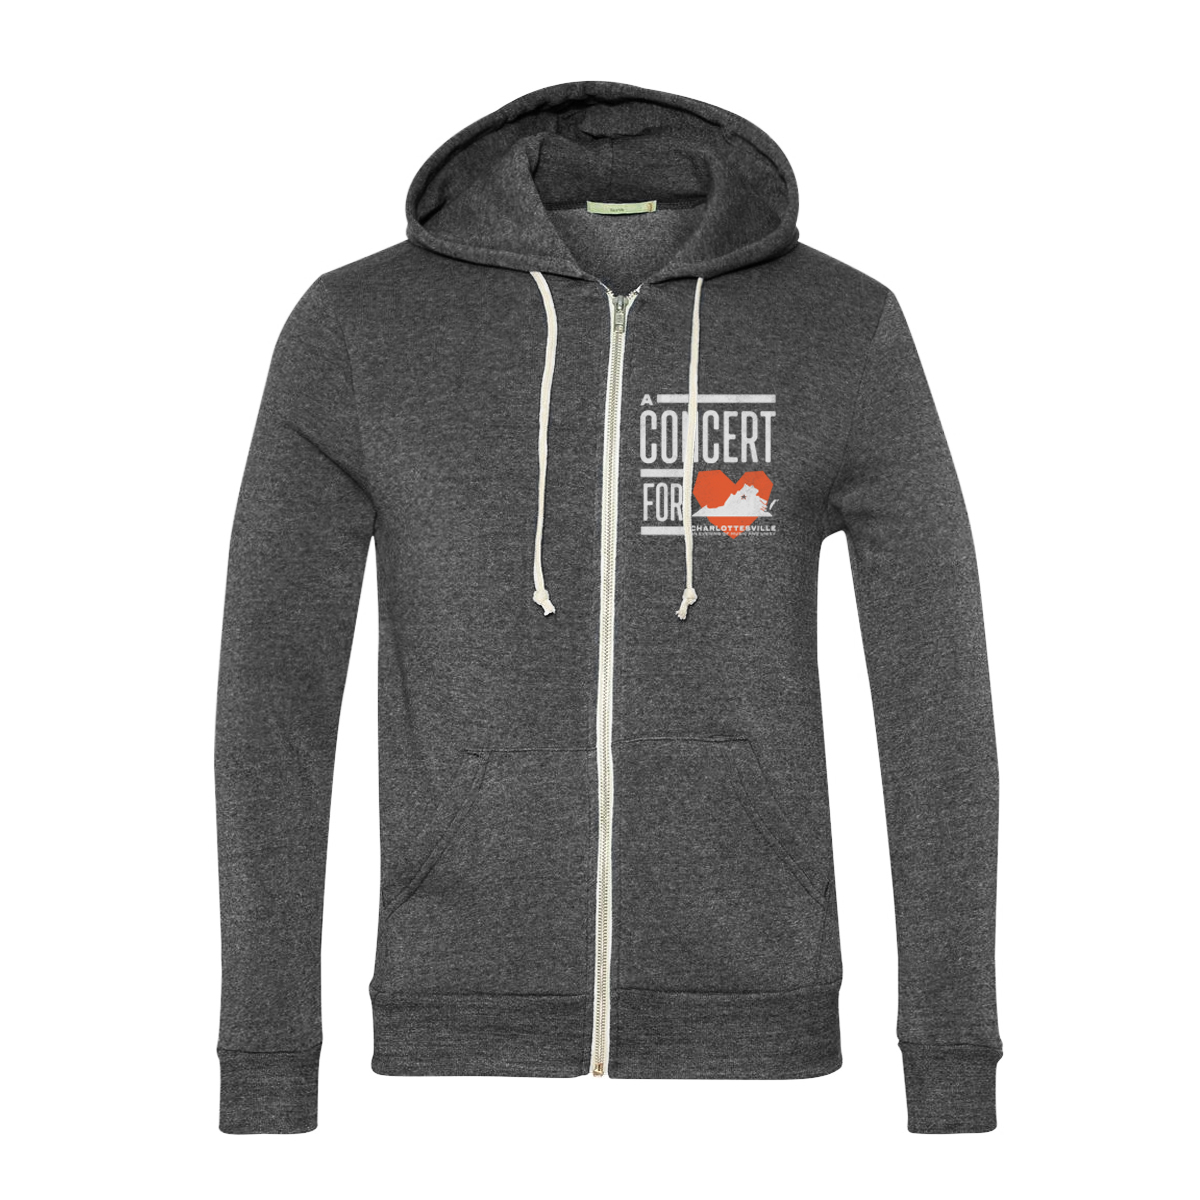 Concert for Charlottesville Hoodie